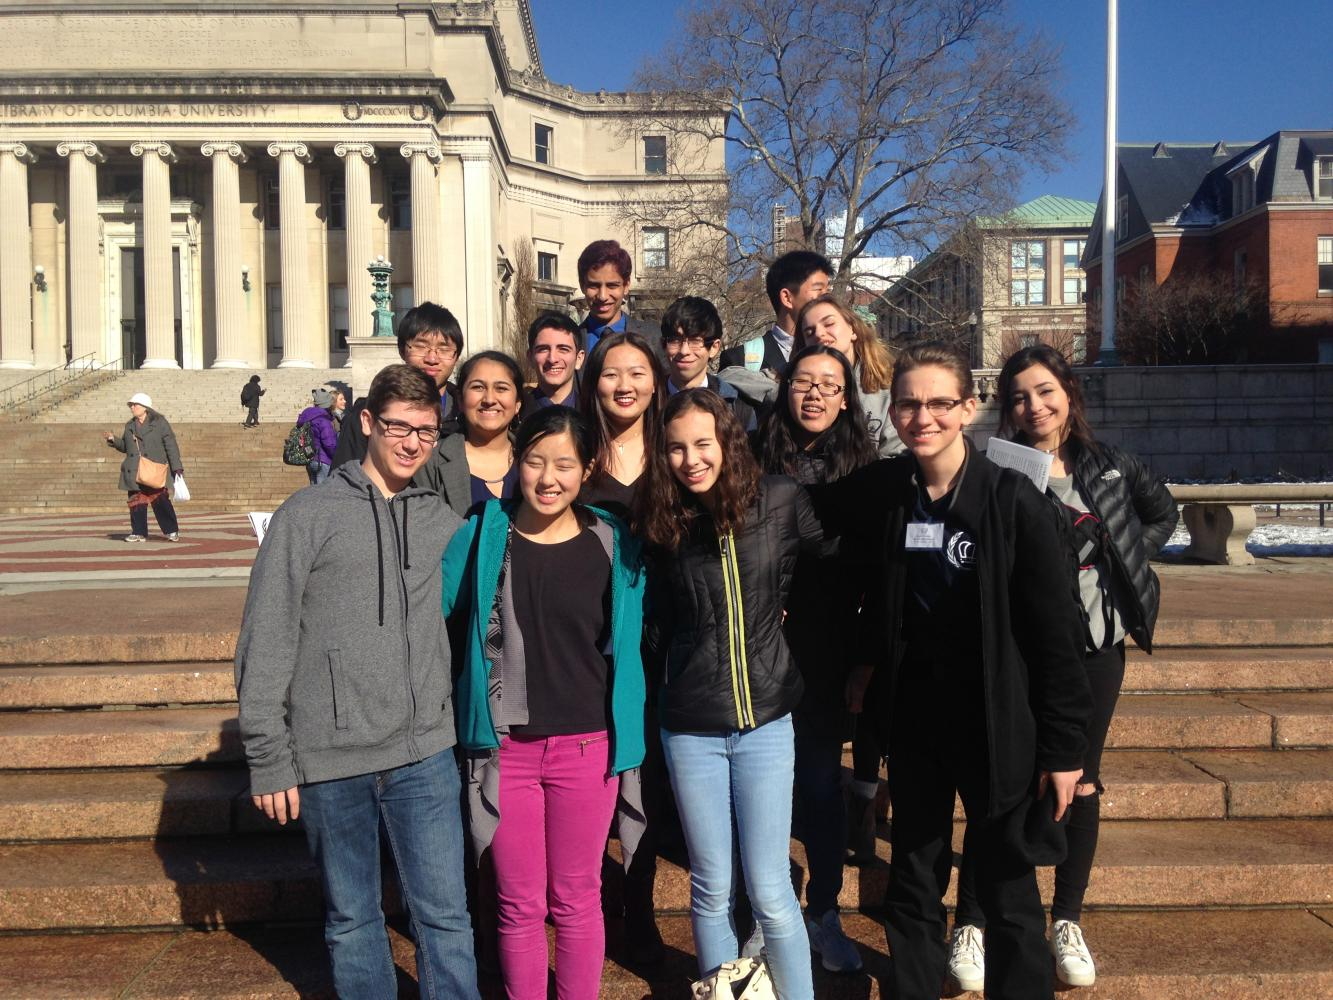 The Model UN club at Columbia University in January. Photo courtesy of Sara Bargiel